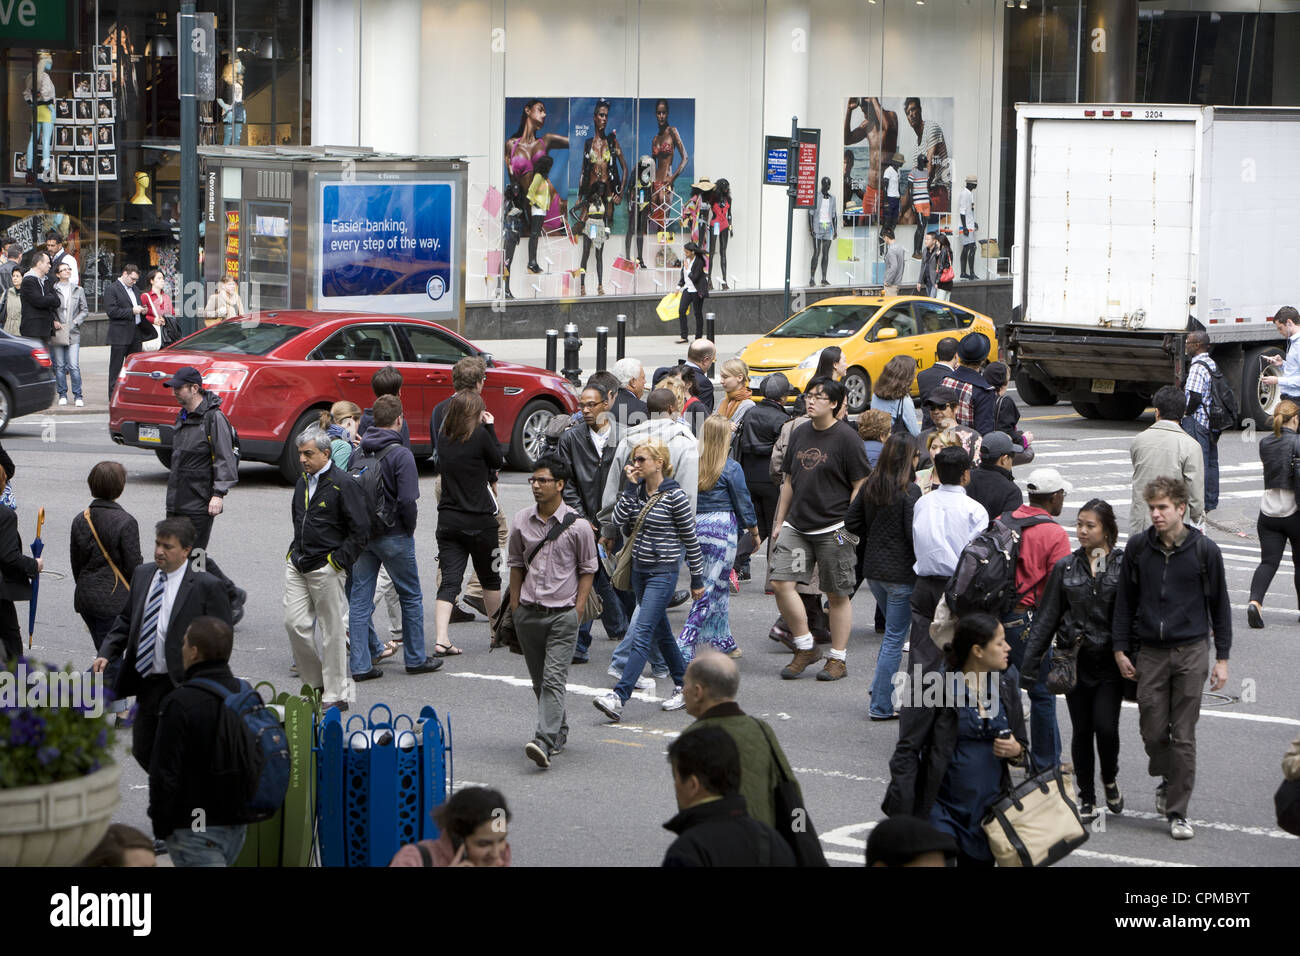 The always busy corner of 42nd Street and 5th Avenue in New York City. - Stock Image